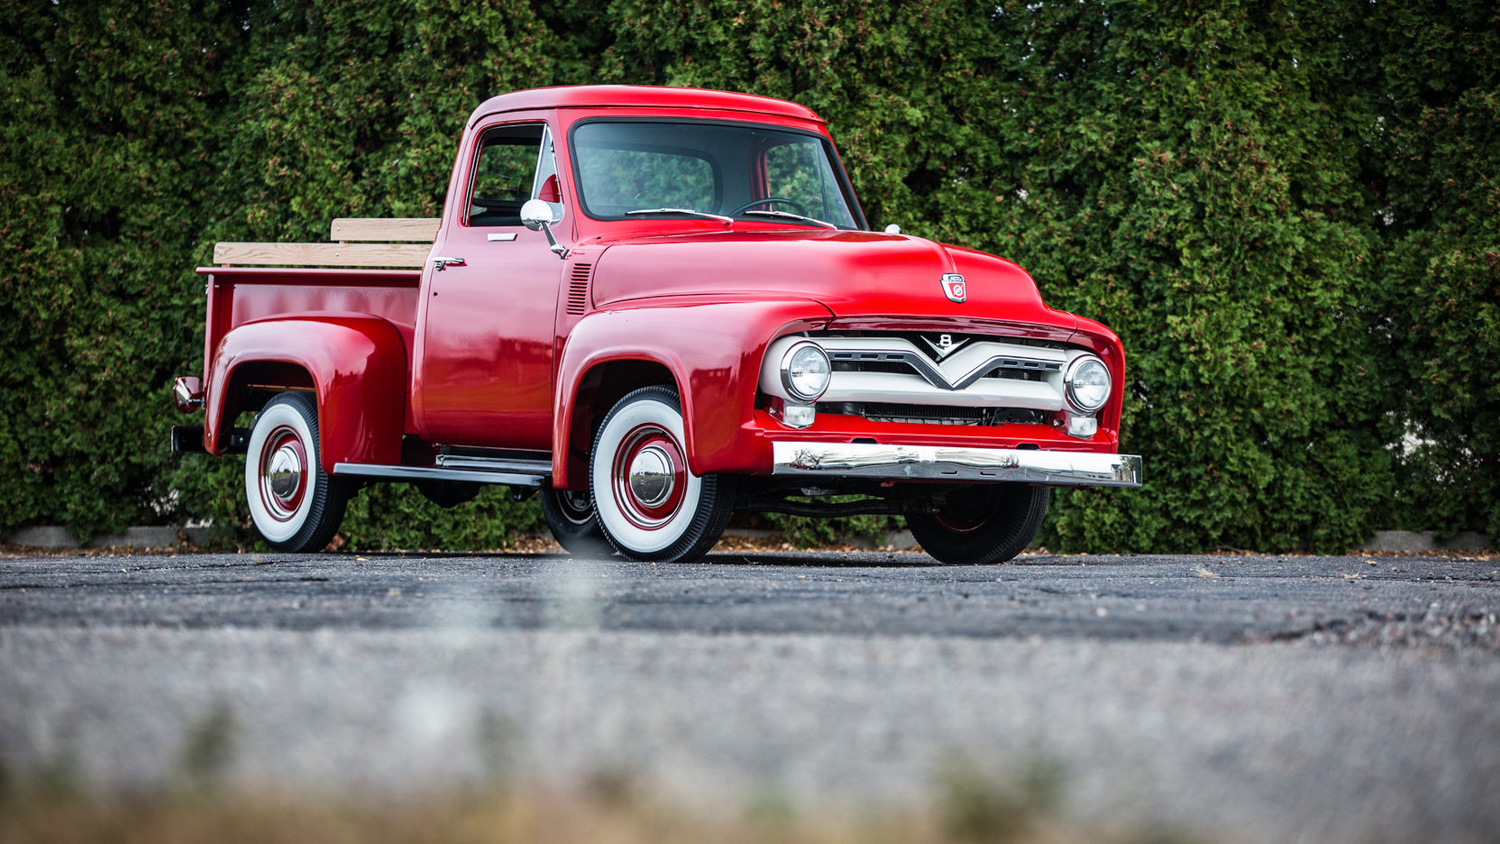 1955 Ford F100 3/4 front low passenger